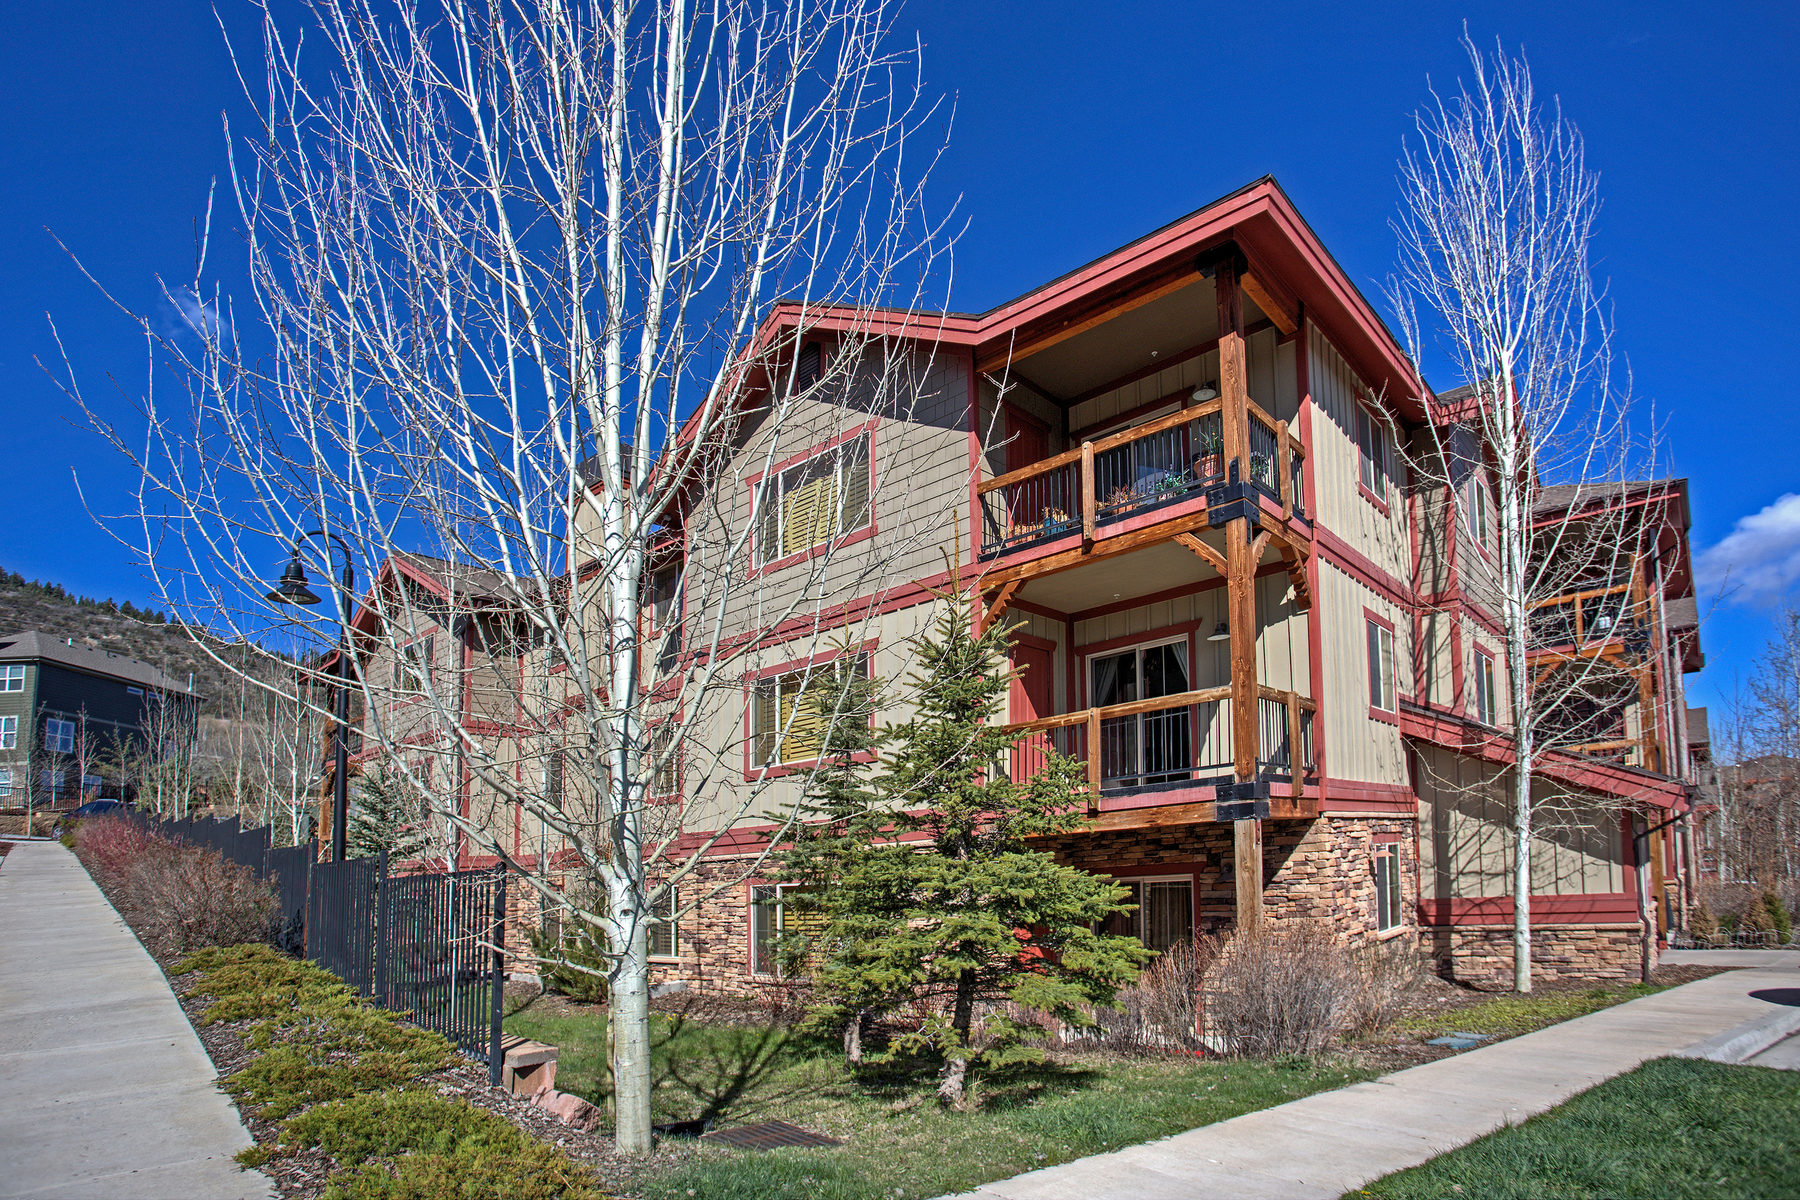 Condominium for Sale at Updated Top Floor Condo at Bear Hollow Lodges 5501 Lillehammer Ln #4407 Park City, Utah, 84098 United States